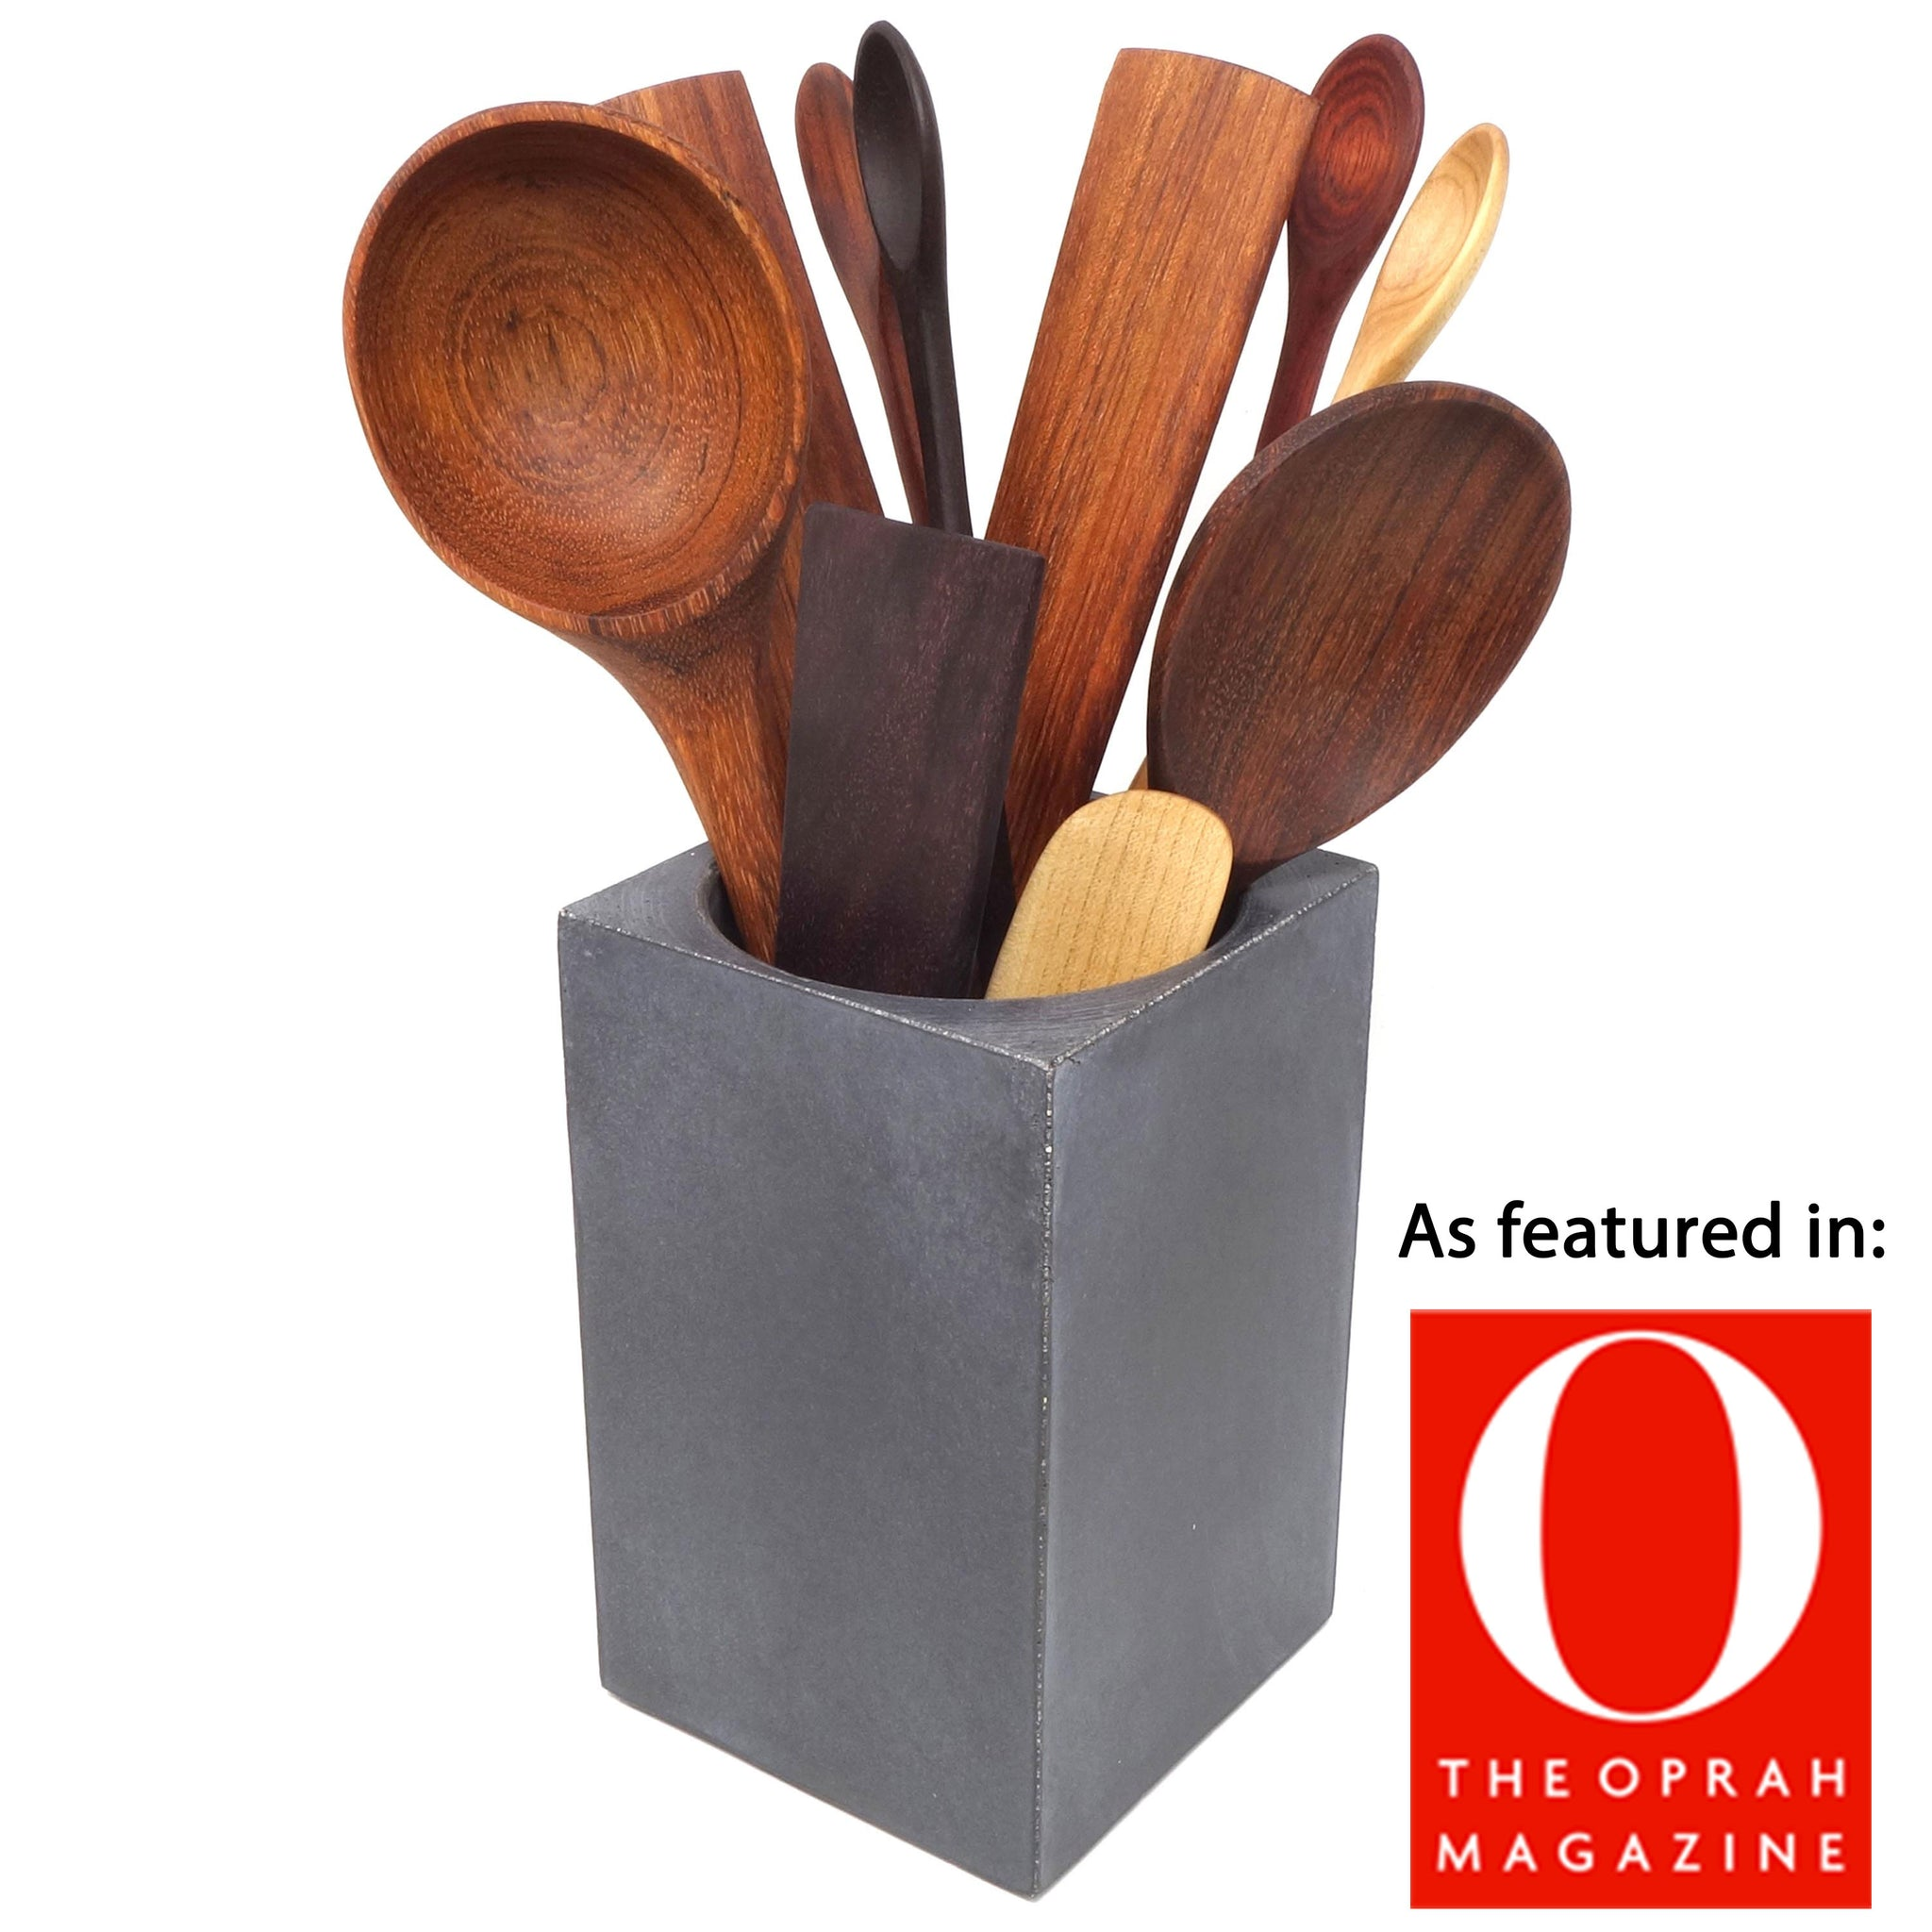 Wooden Cooking Utensils Earlywood